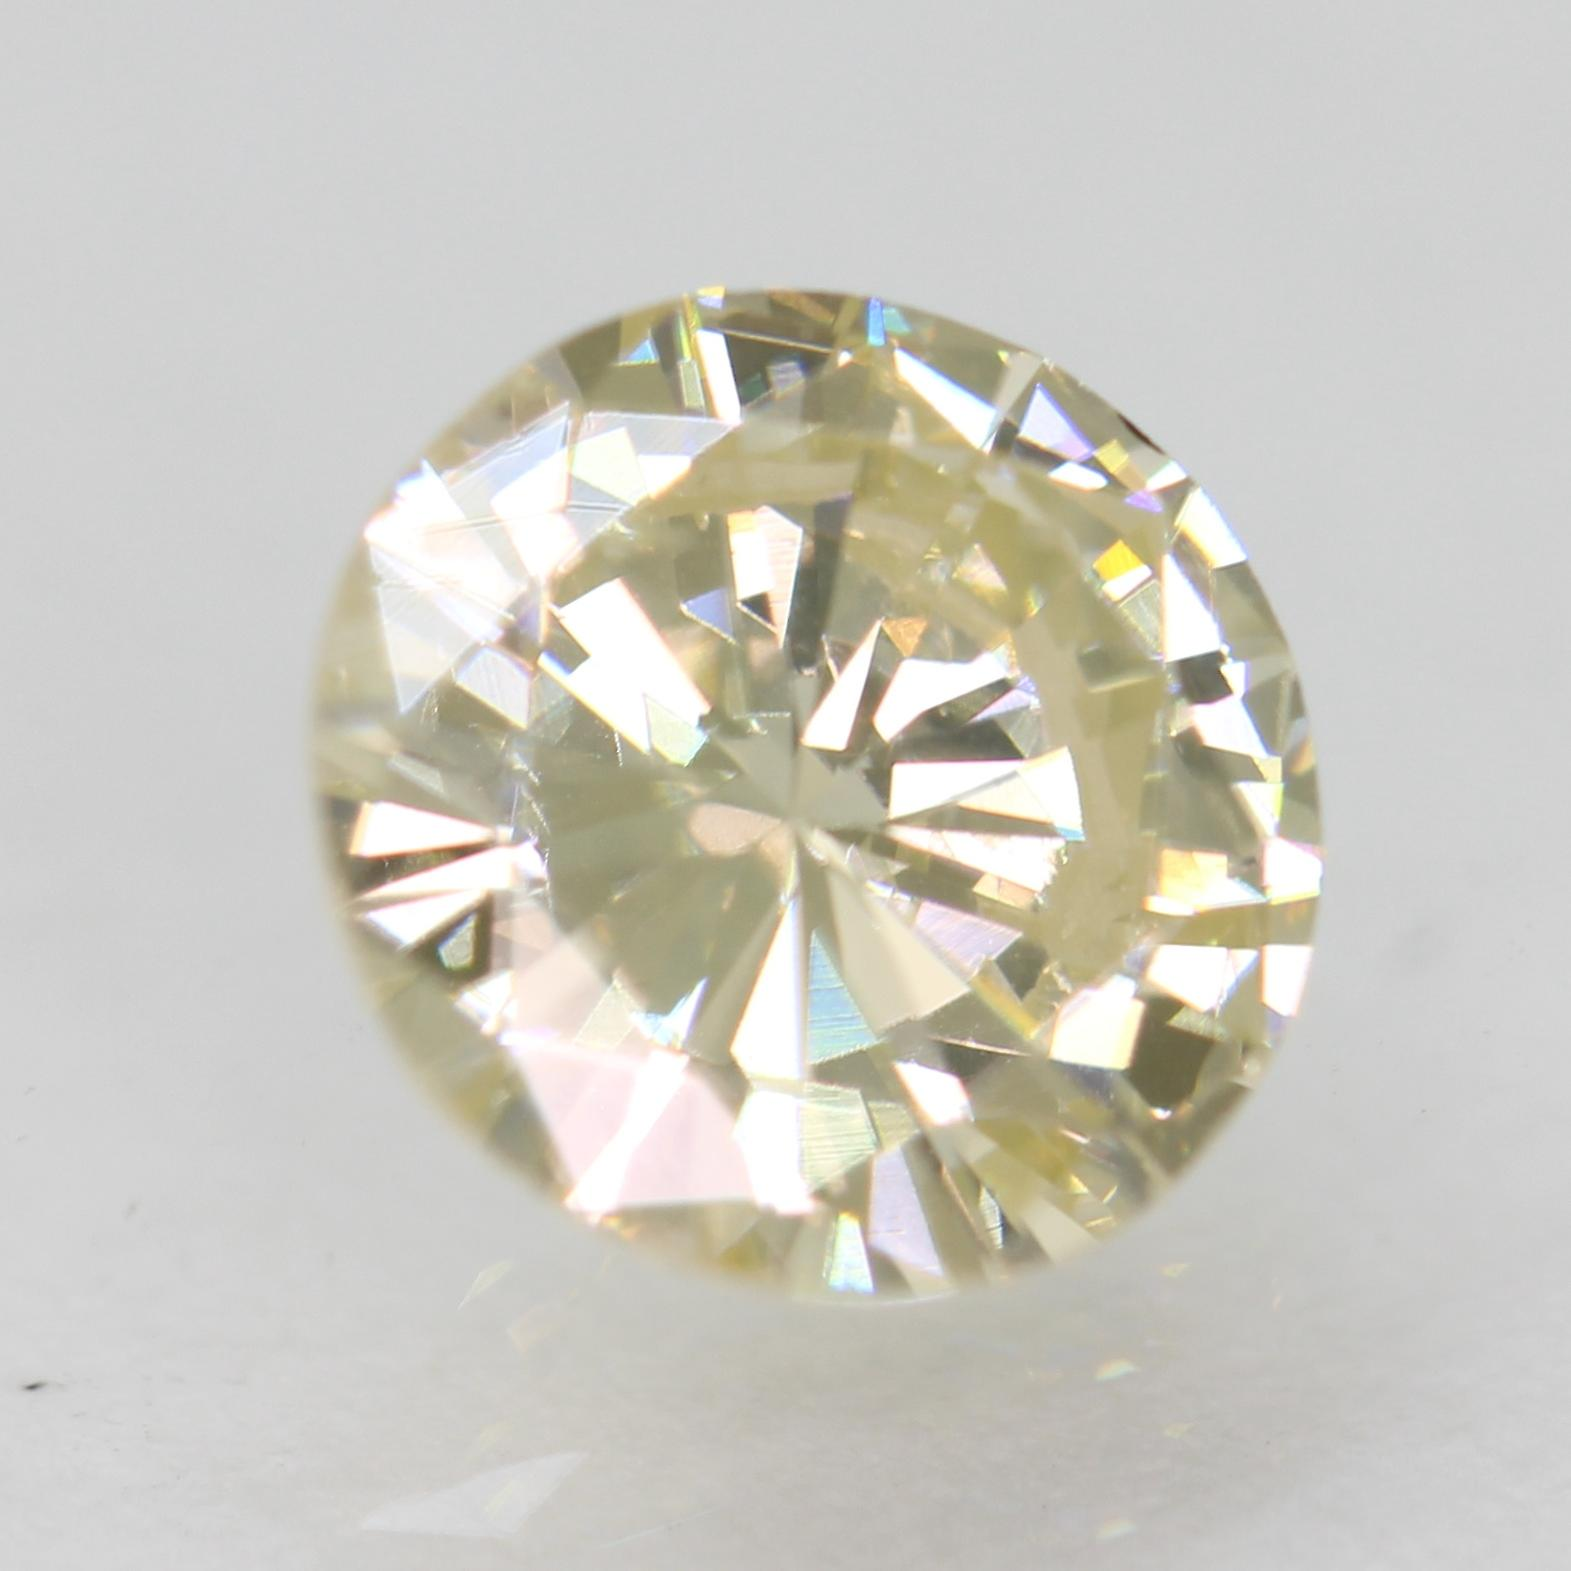 Certified 1.00 Carat J Color VS2 Round Brilliant Natural Loose Diamond 6.72m 3VG